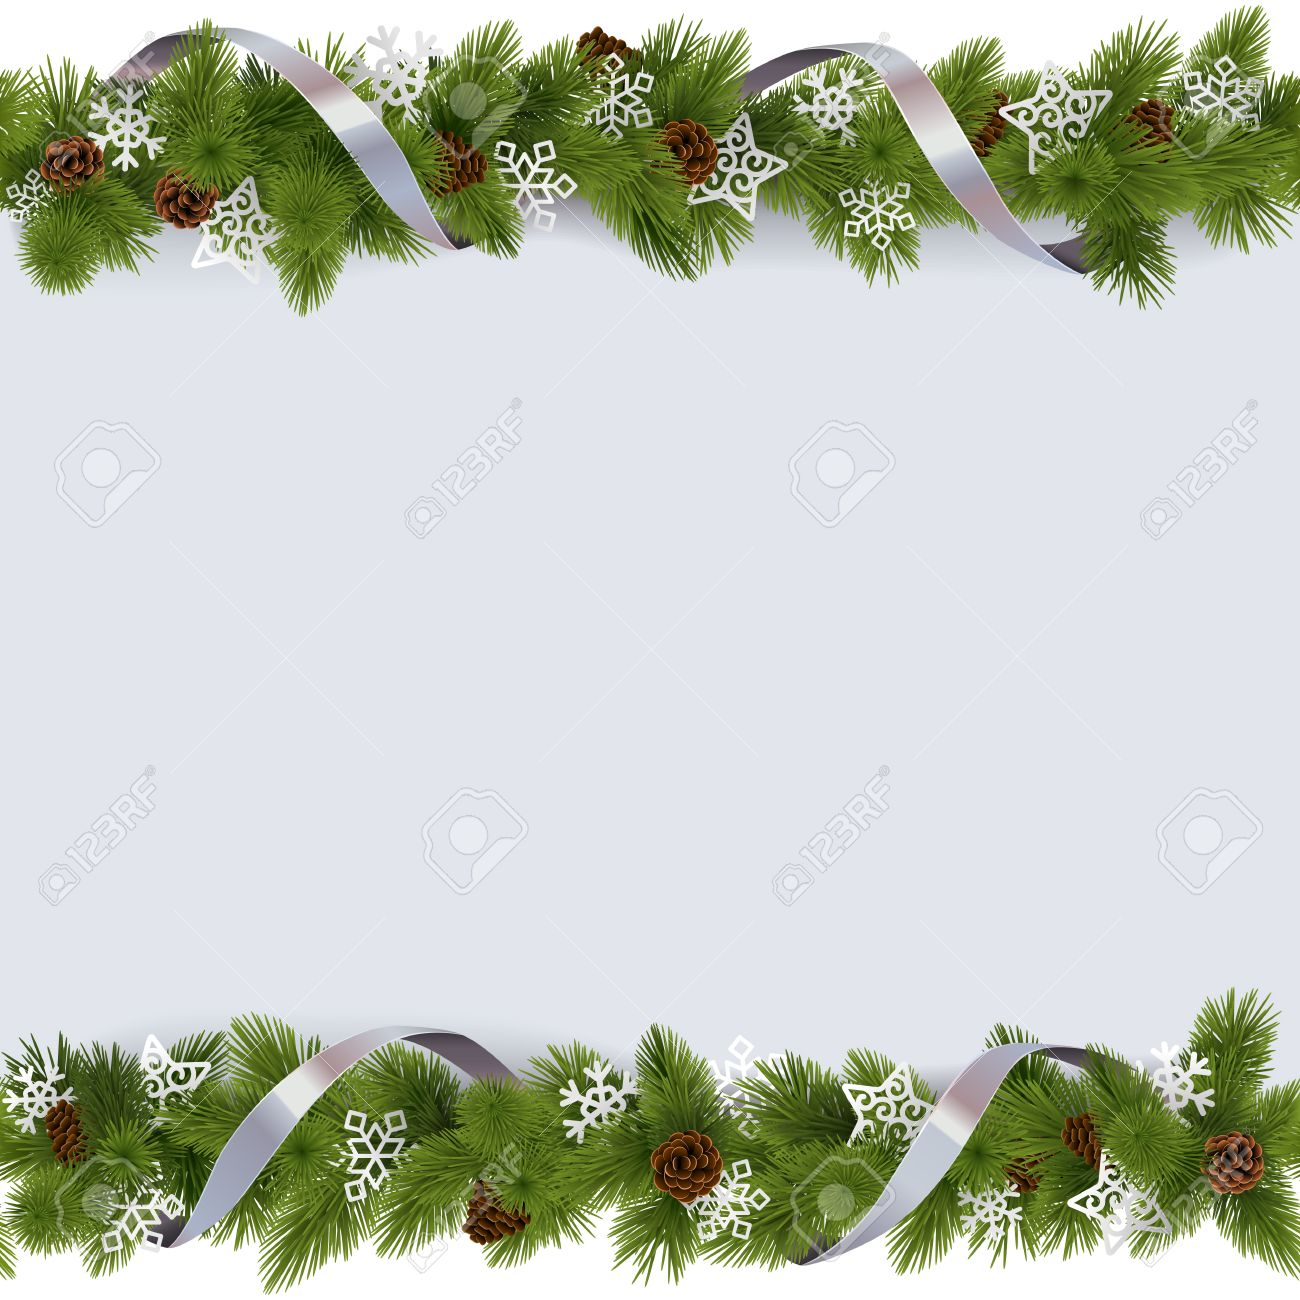 68 060 Christmas Garland Cliparts Stock Vector And Royalty Free